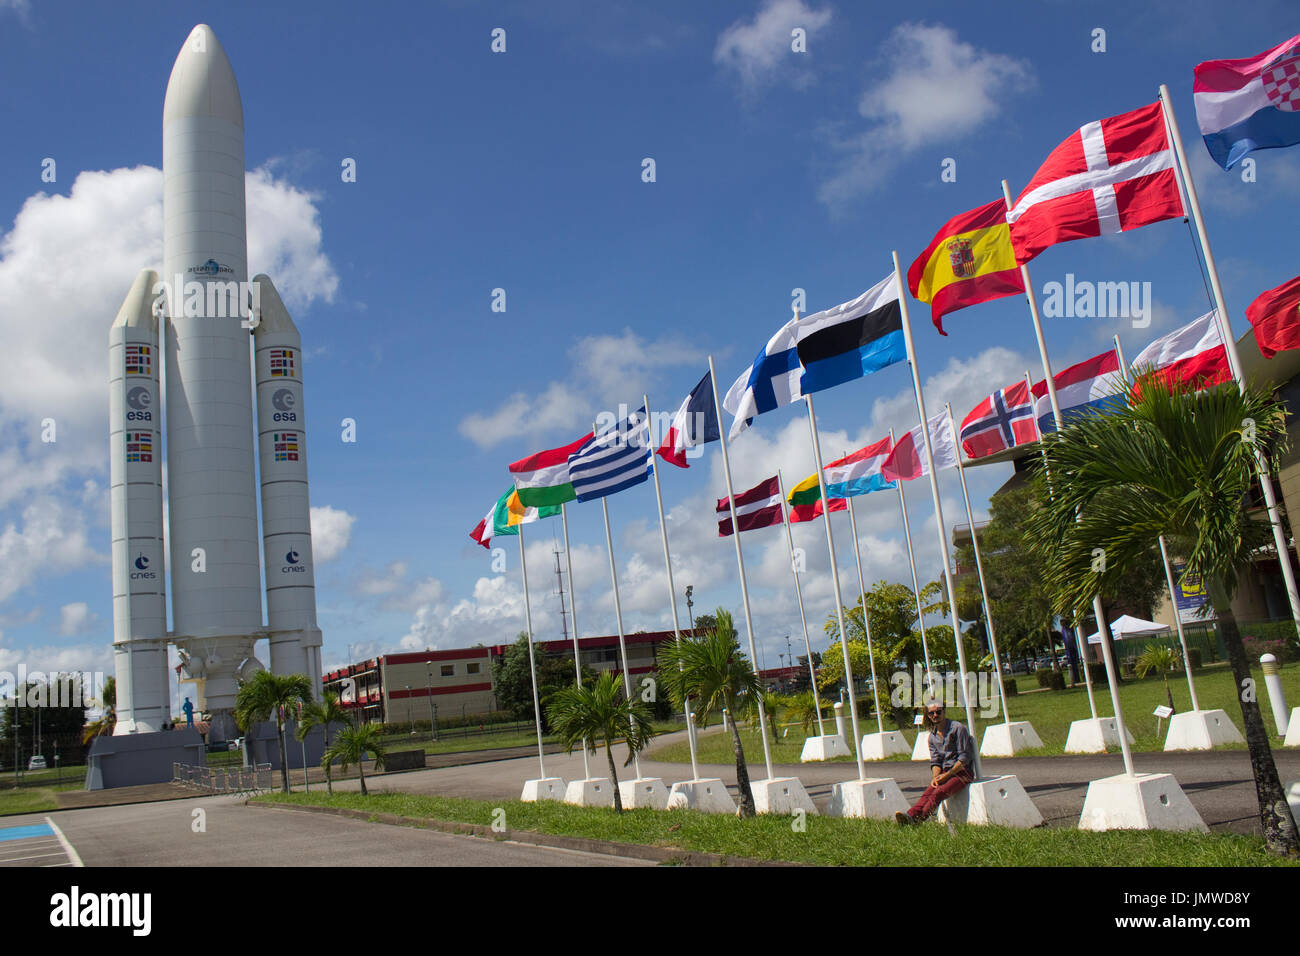 Upside down Estonian flag at the European Space Agency, French Guiana - Stock Image